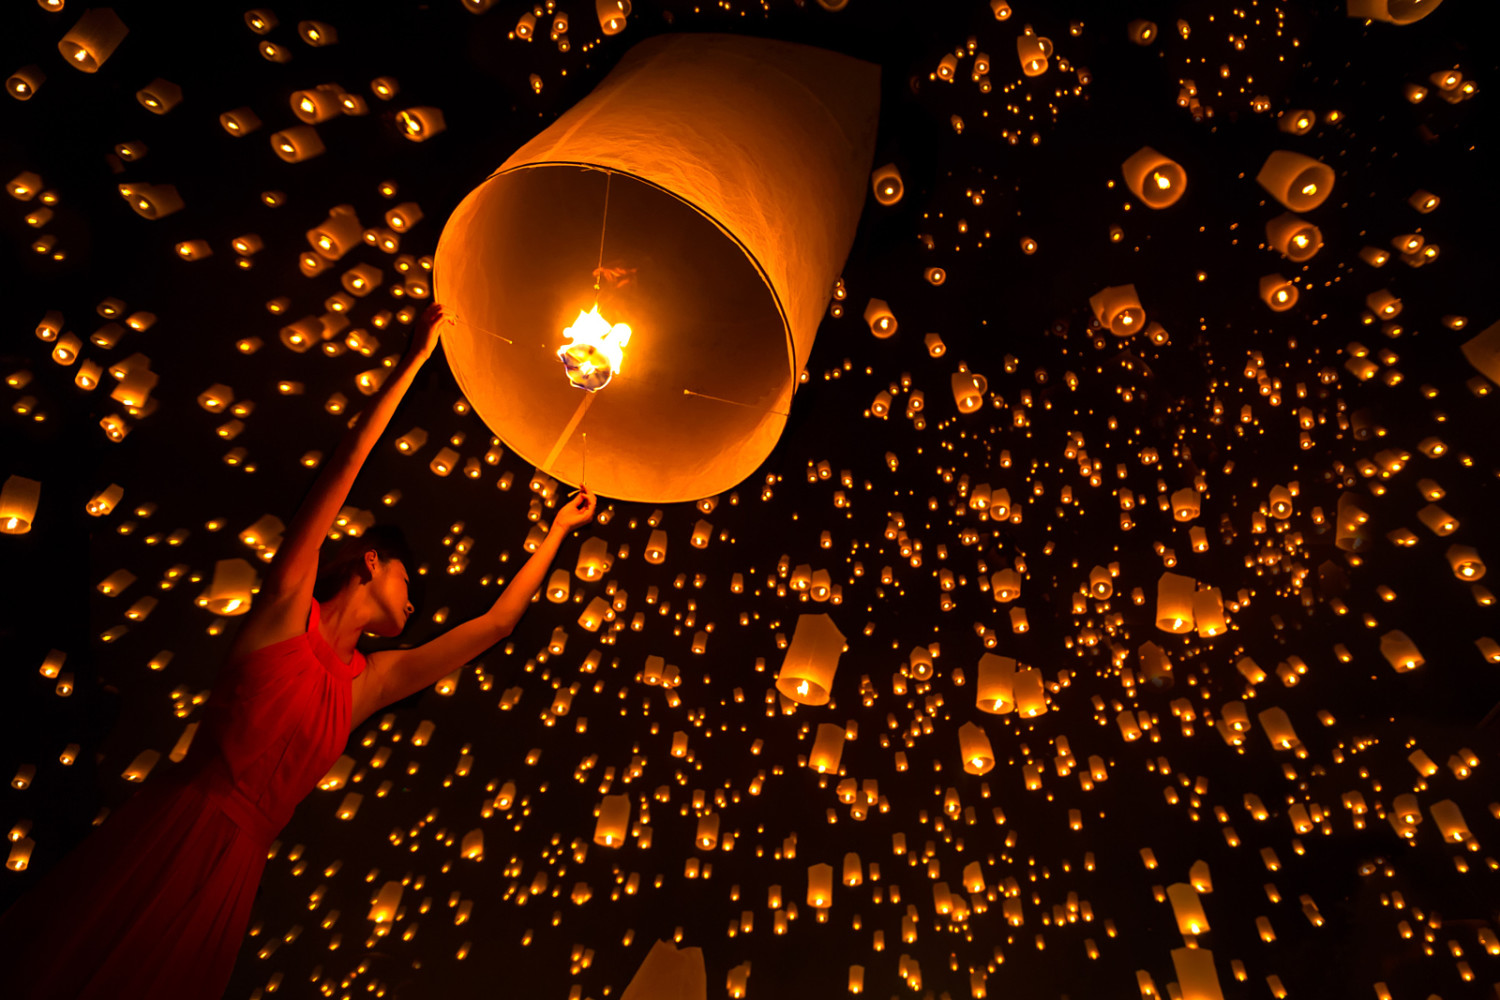 21 Incredibly Beautiful Photos of the Yi Peng Lantern Festival